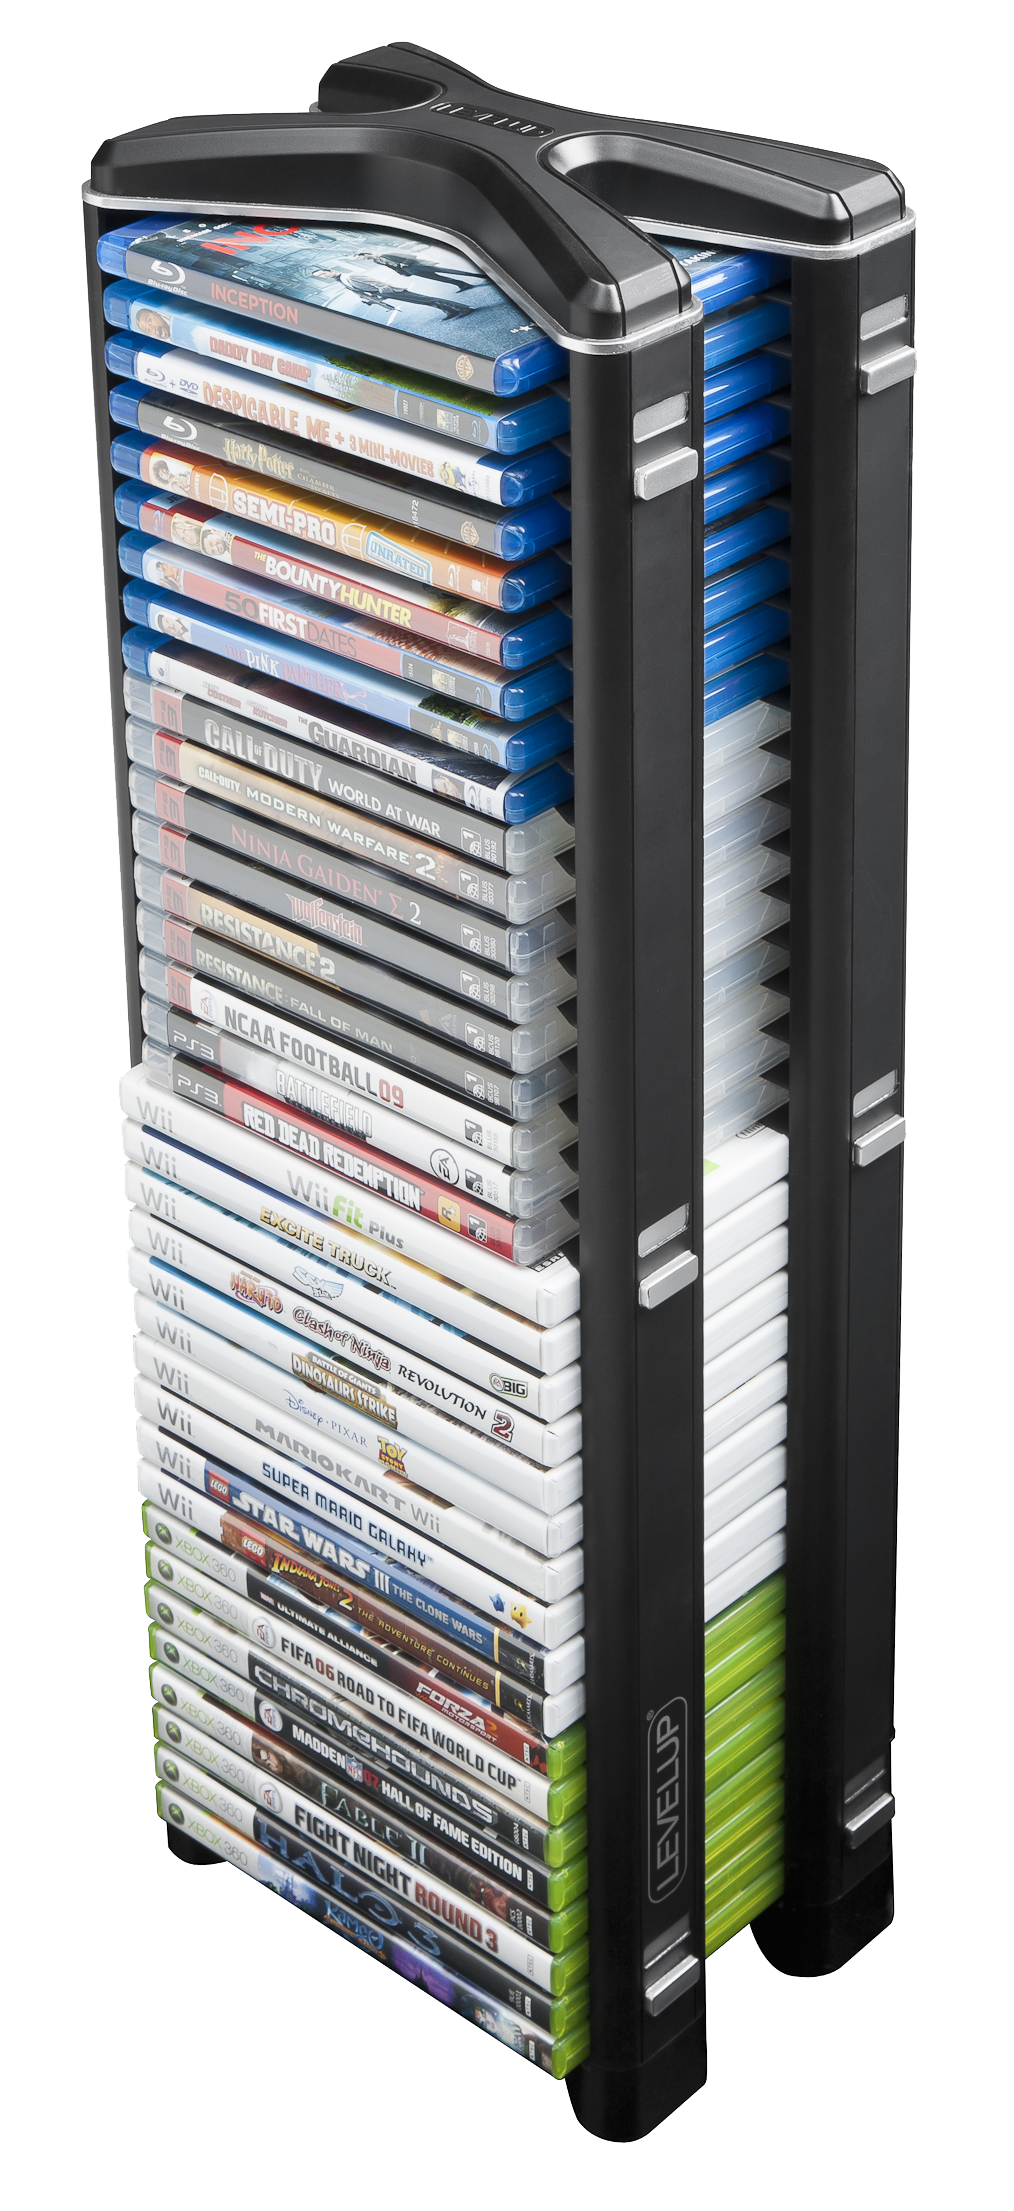 Stealth Media Storage Tower The Versatile Value For Your